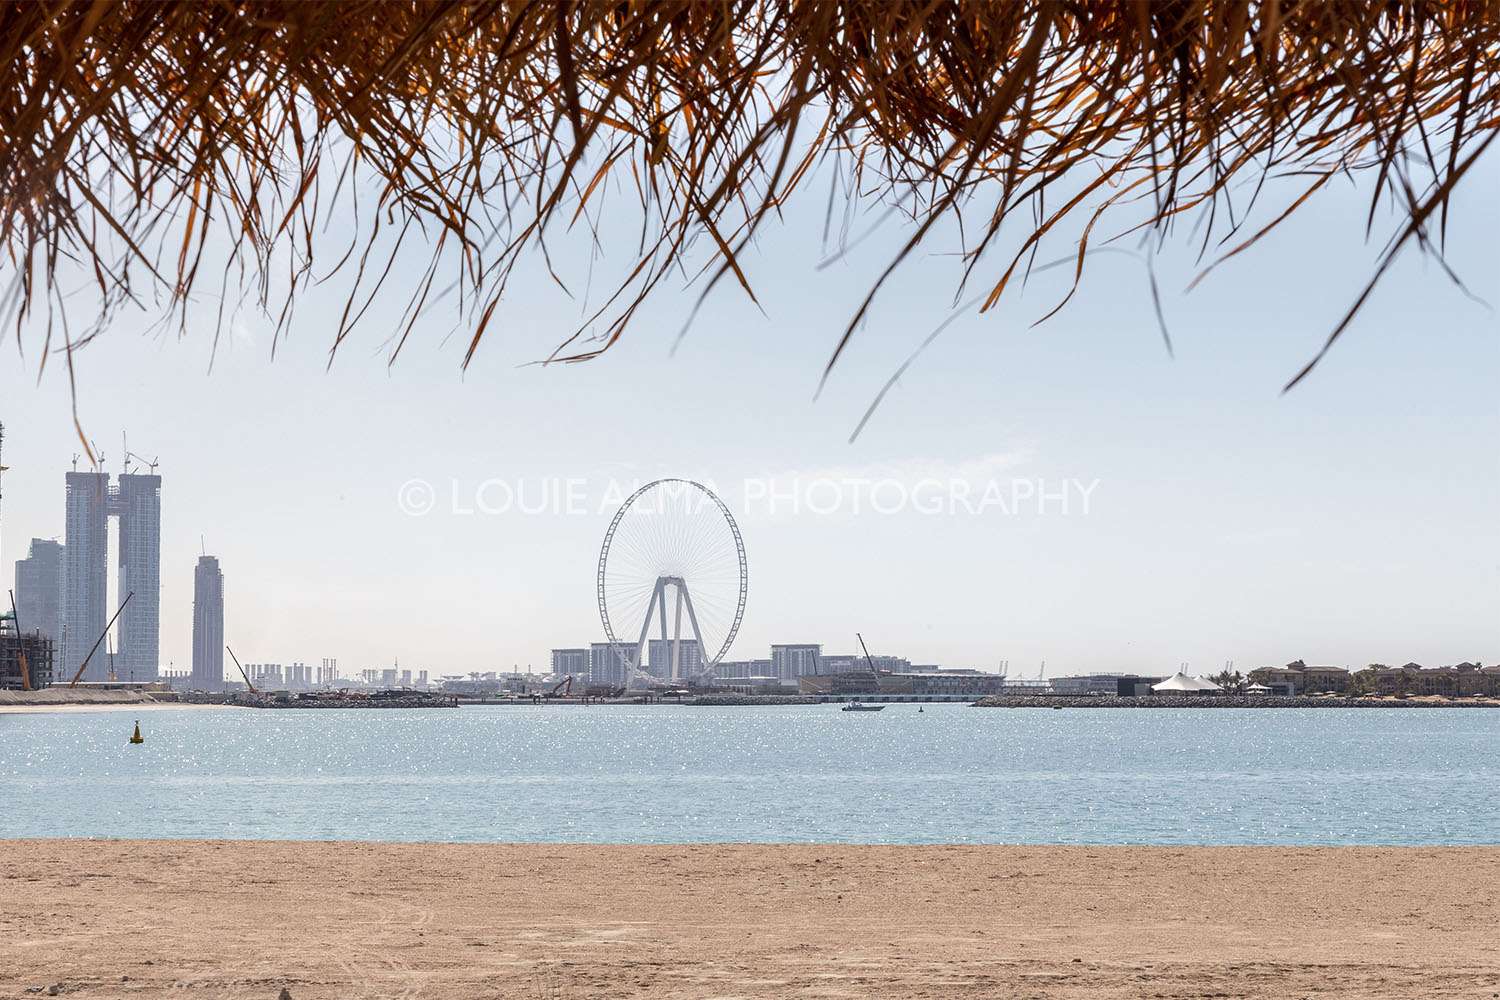 Louie Alma - Travel Photography, Palm Beach Dubai